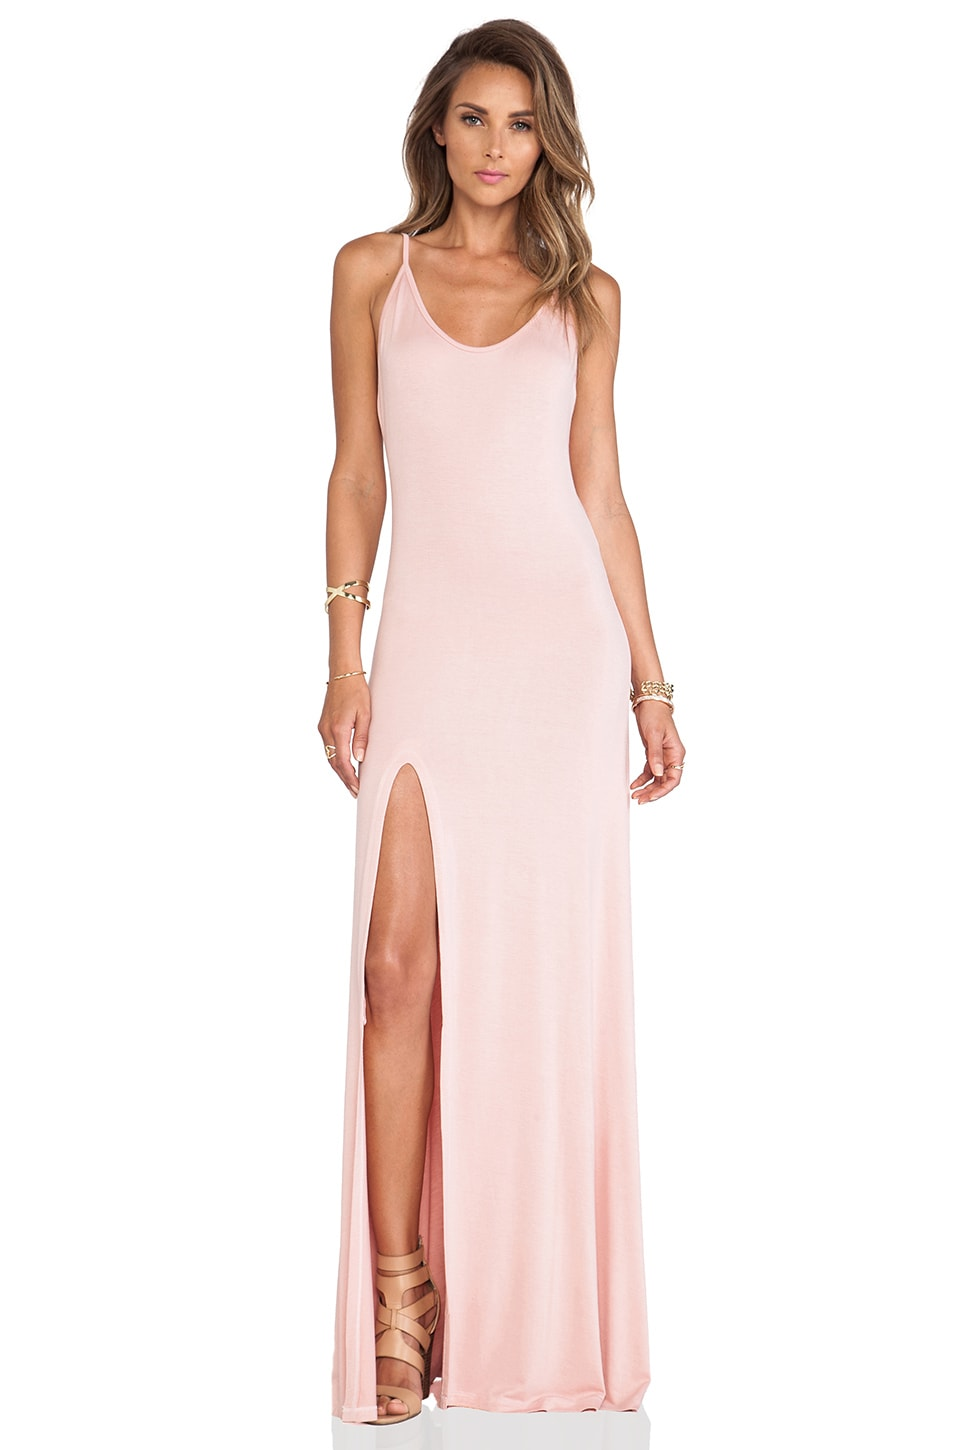 Lovers + Friends Another Girl Maxi Dress in Mauve